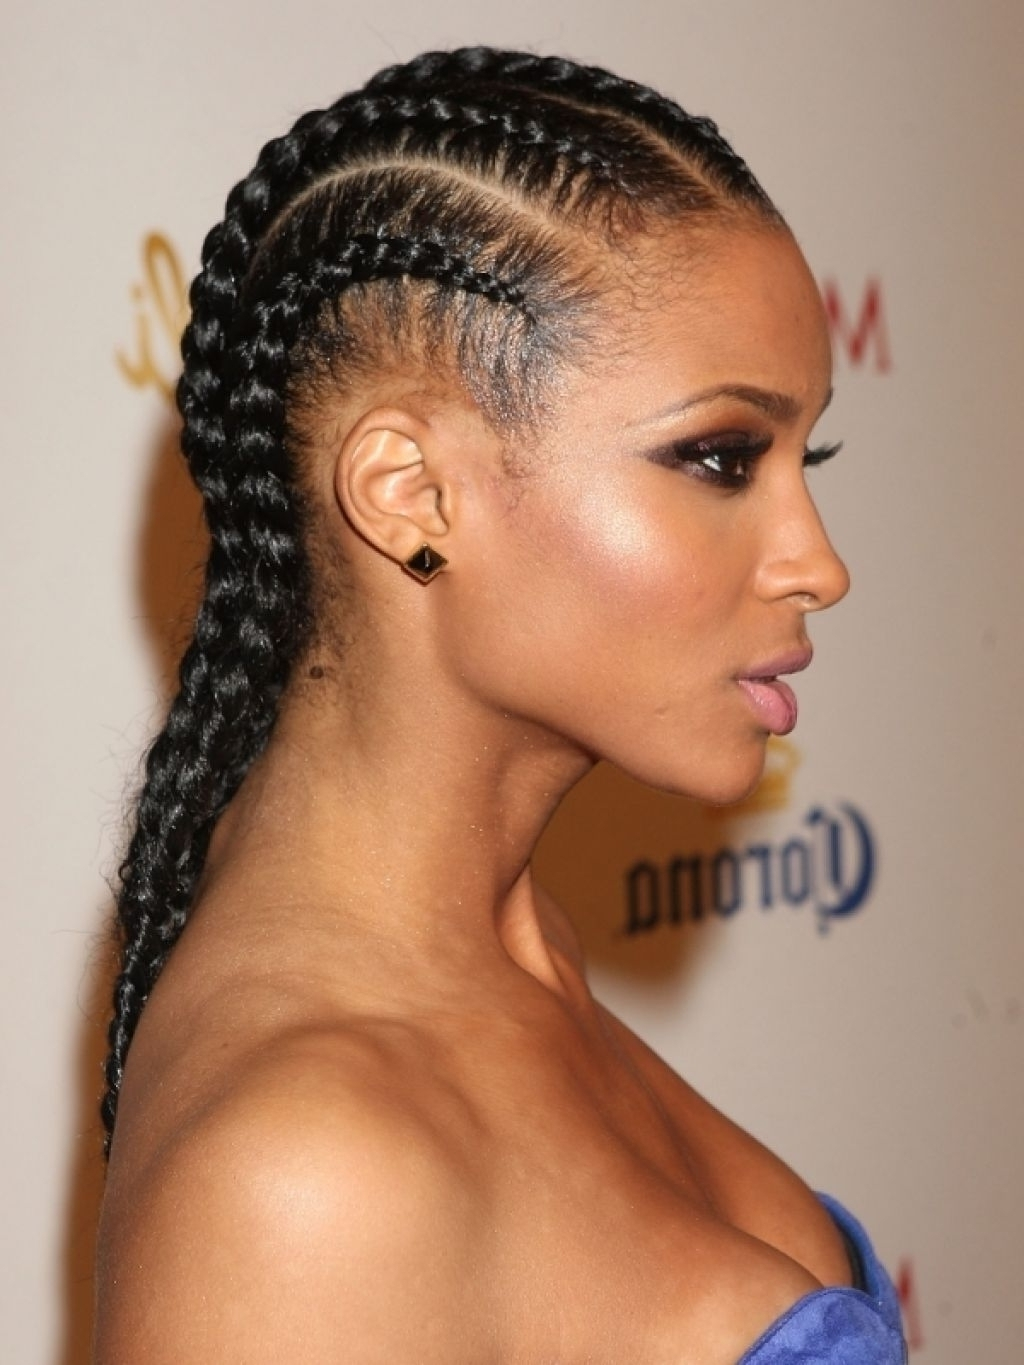 Latest South Africa Braided Hairstyles Regarding Braids Hairstyles Southafrican New Hairstyles In South Africa South (View 13 of 15)